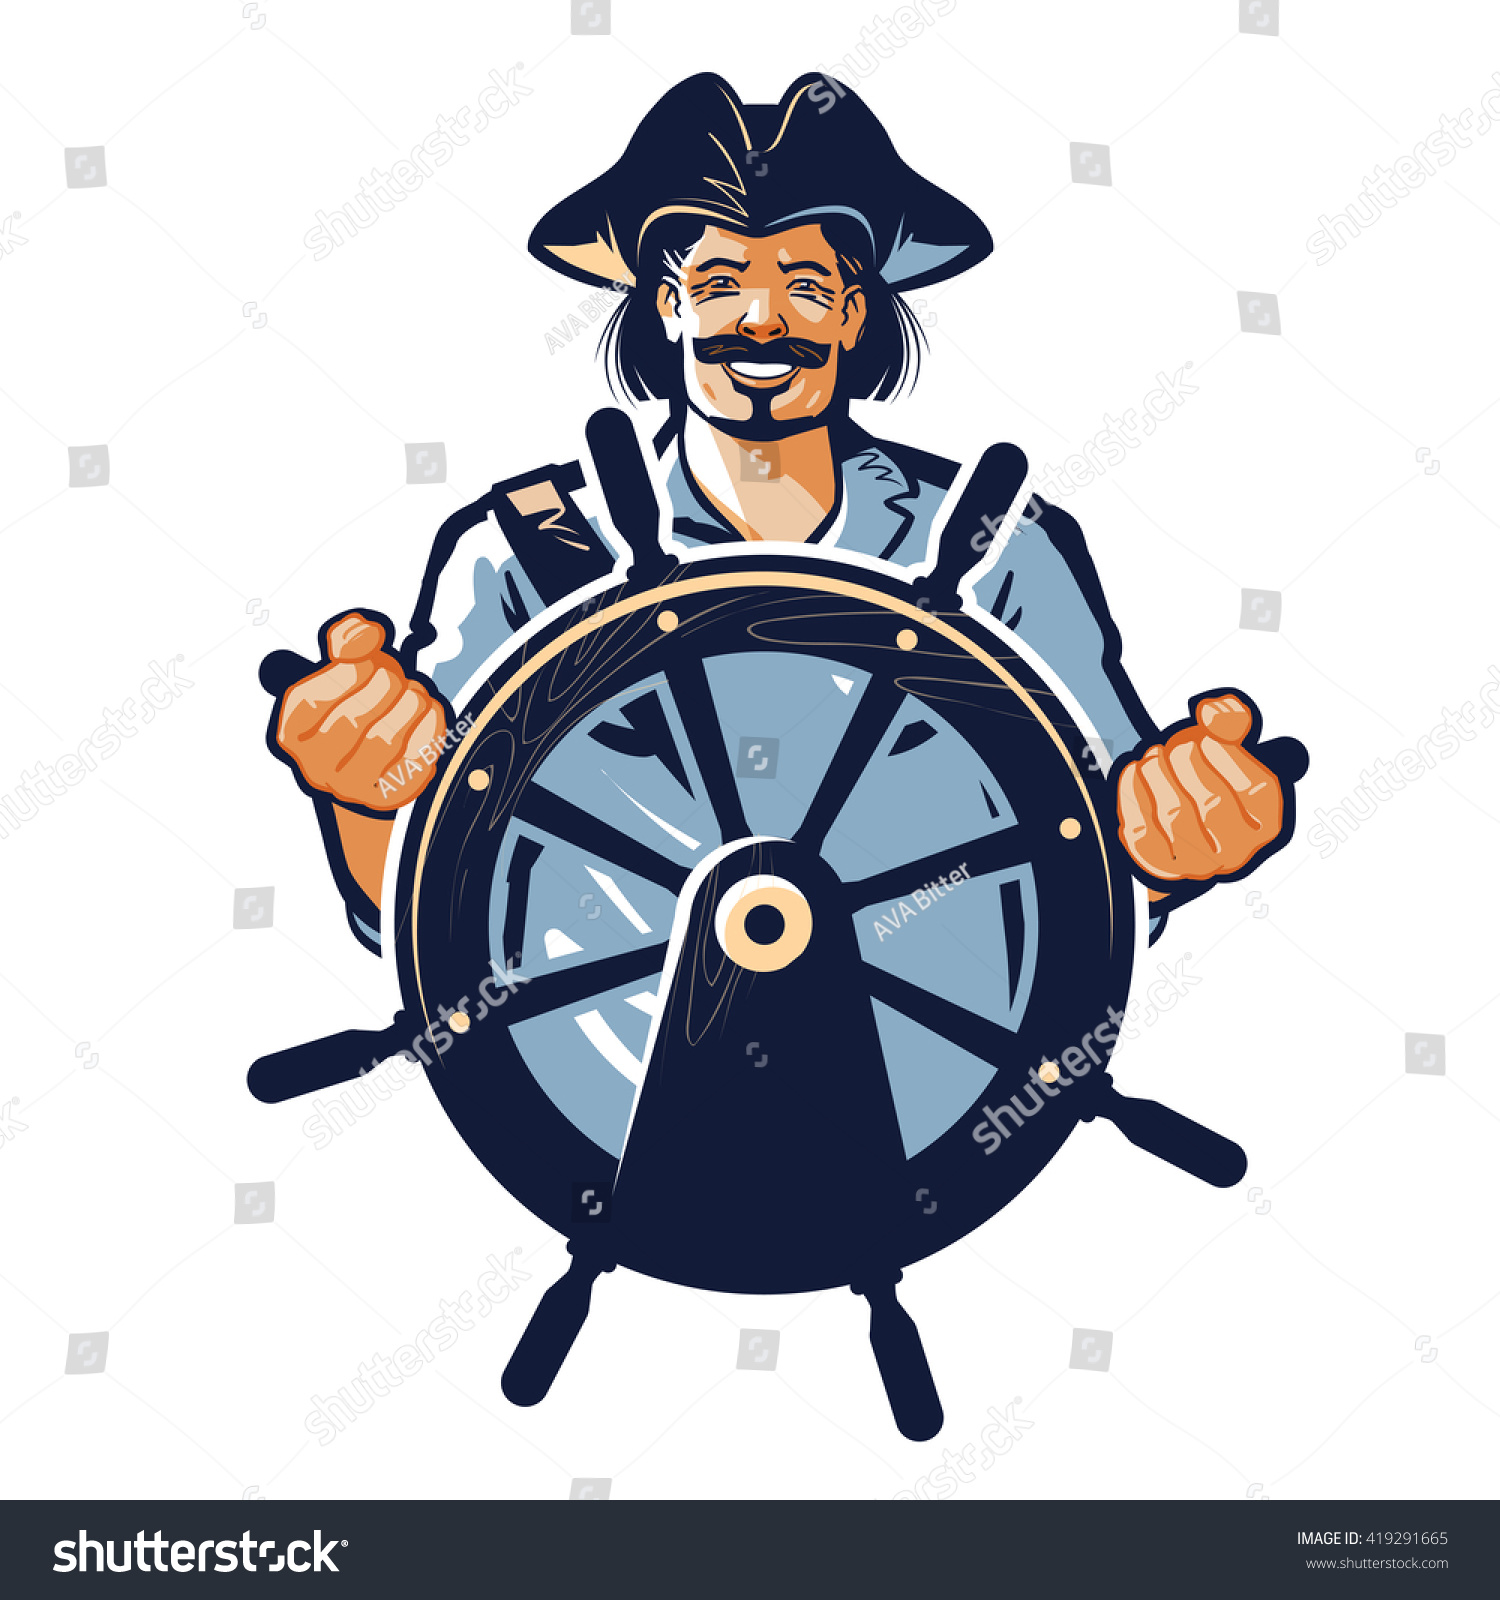 pirate vector logo corsair or captain sailor seafarer icon